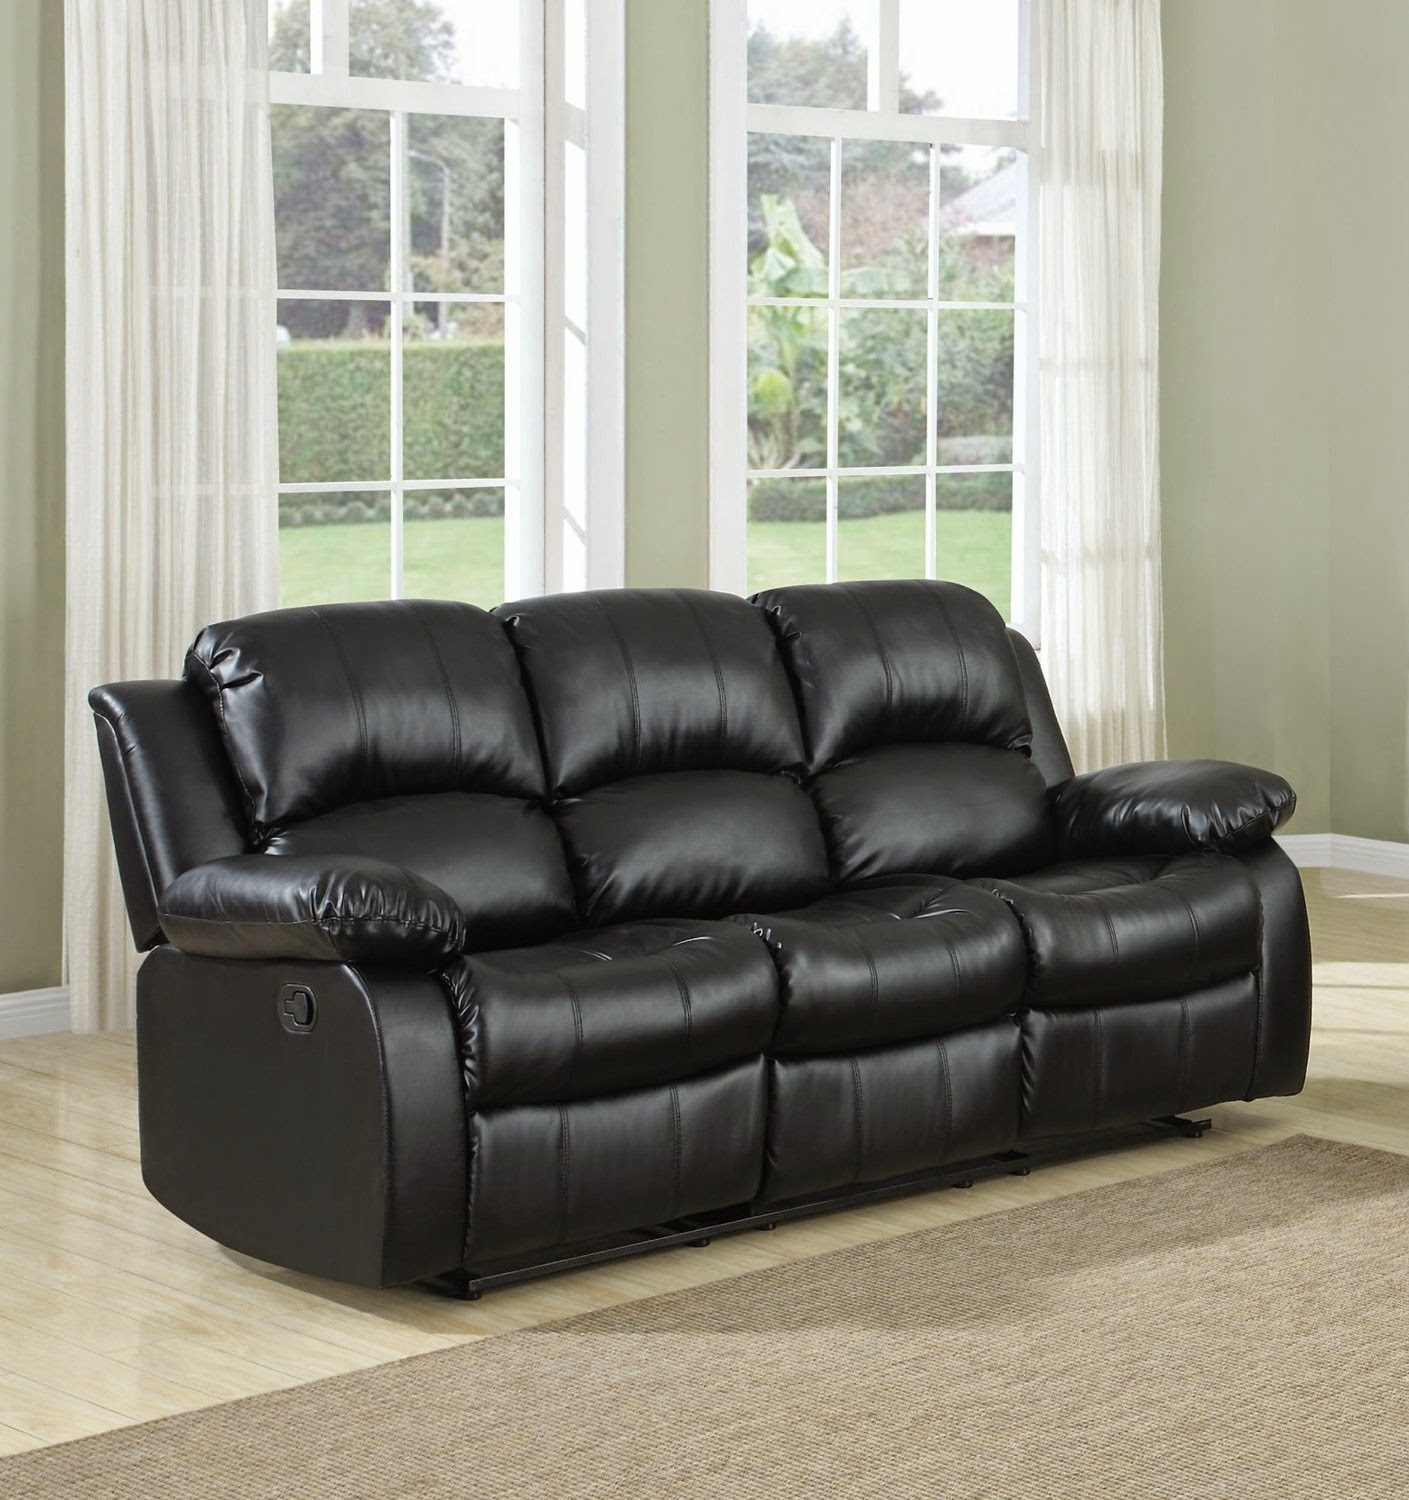 Sofa Recliner Sale Recliner Sofa Bed Singapore